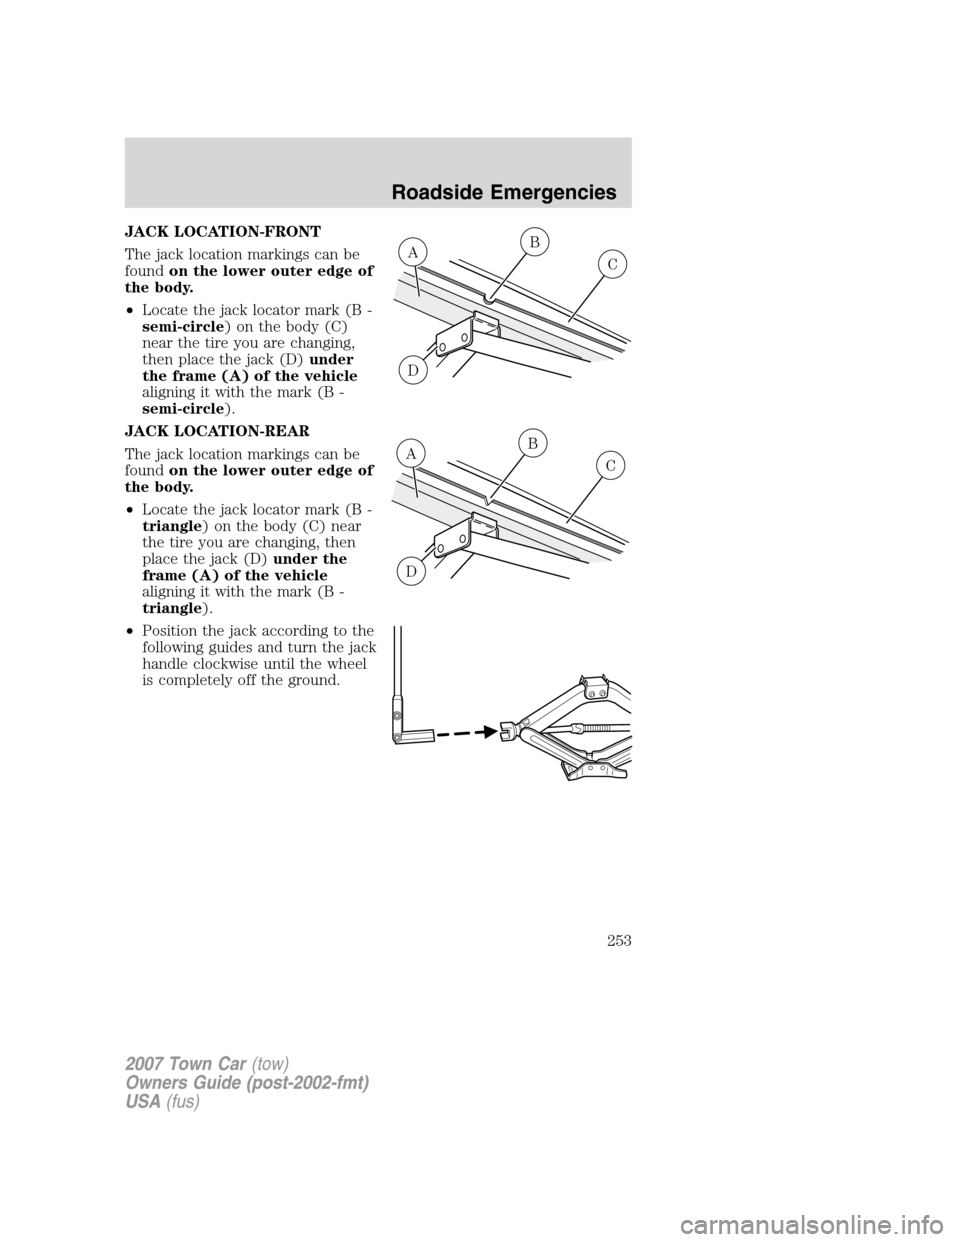 LINCOLN TOWN CAR 2007 Owners Manual (328 Pages), Page 260